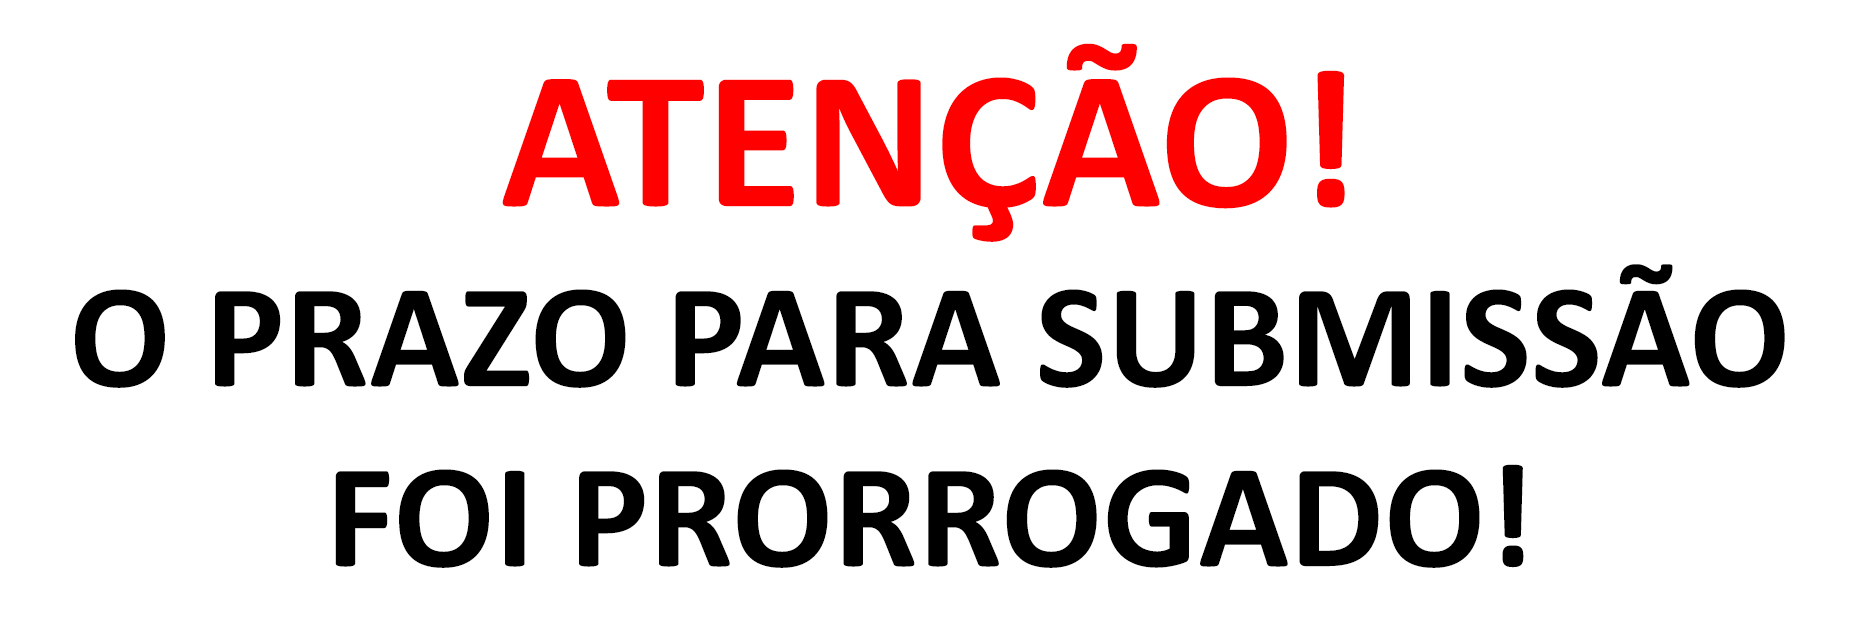 submissão_prorrogado